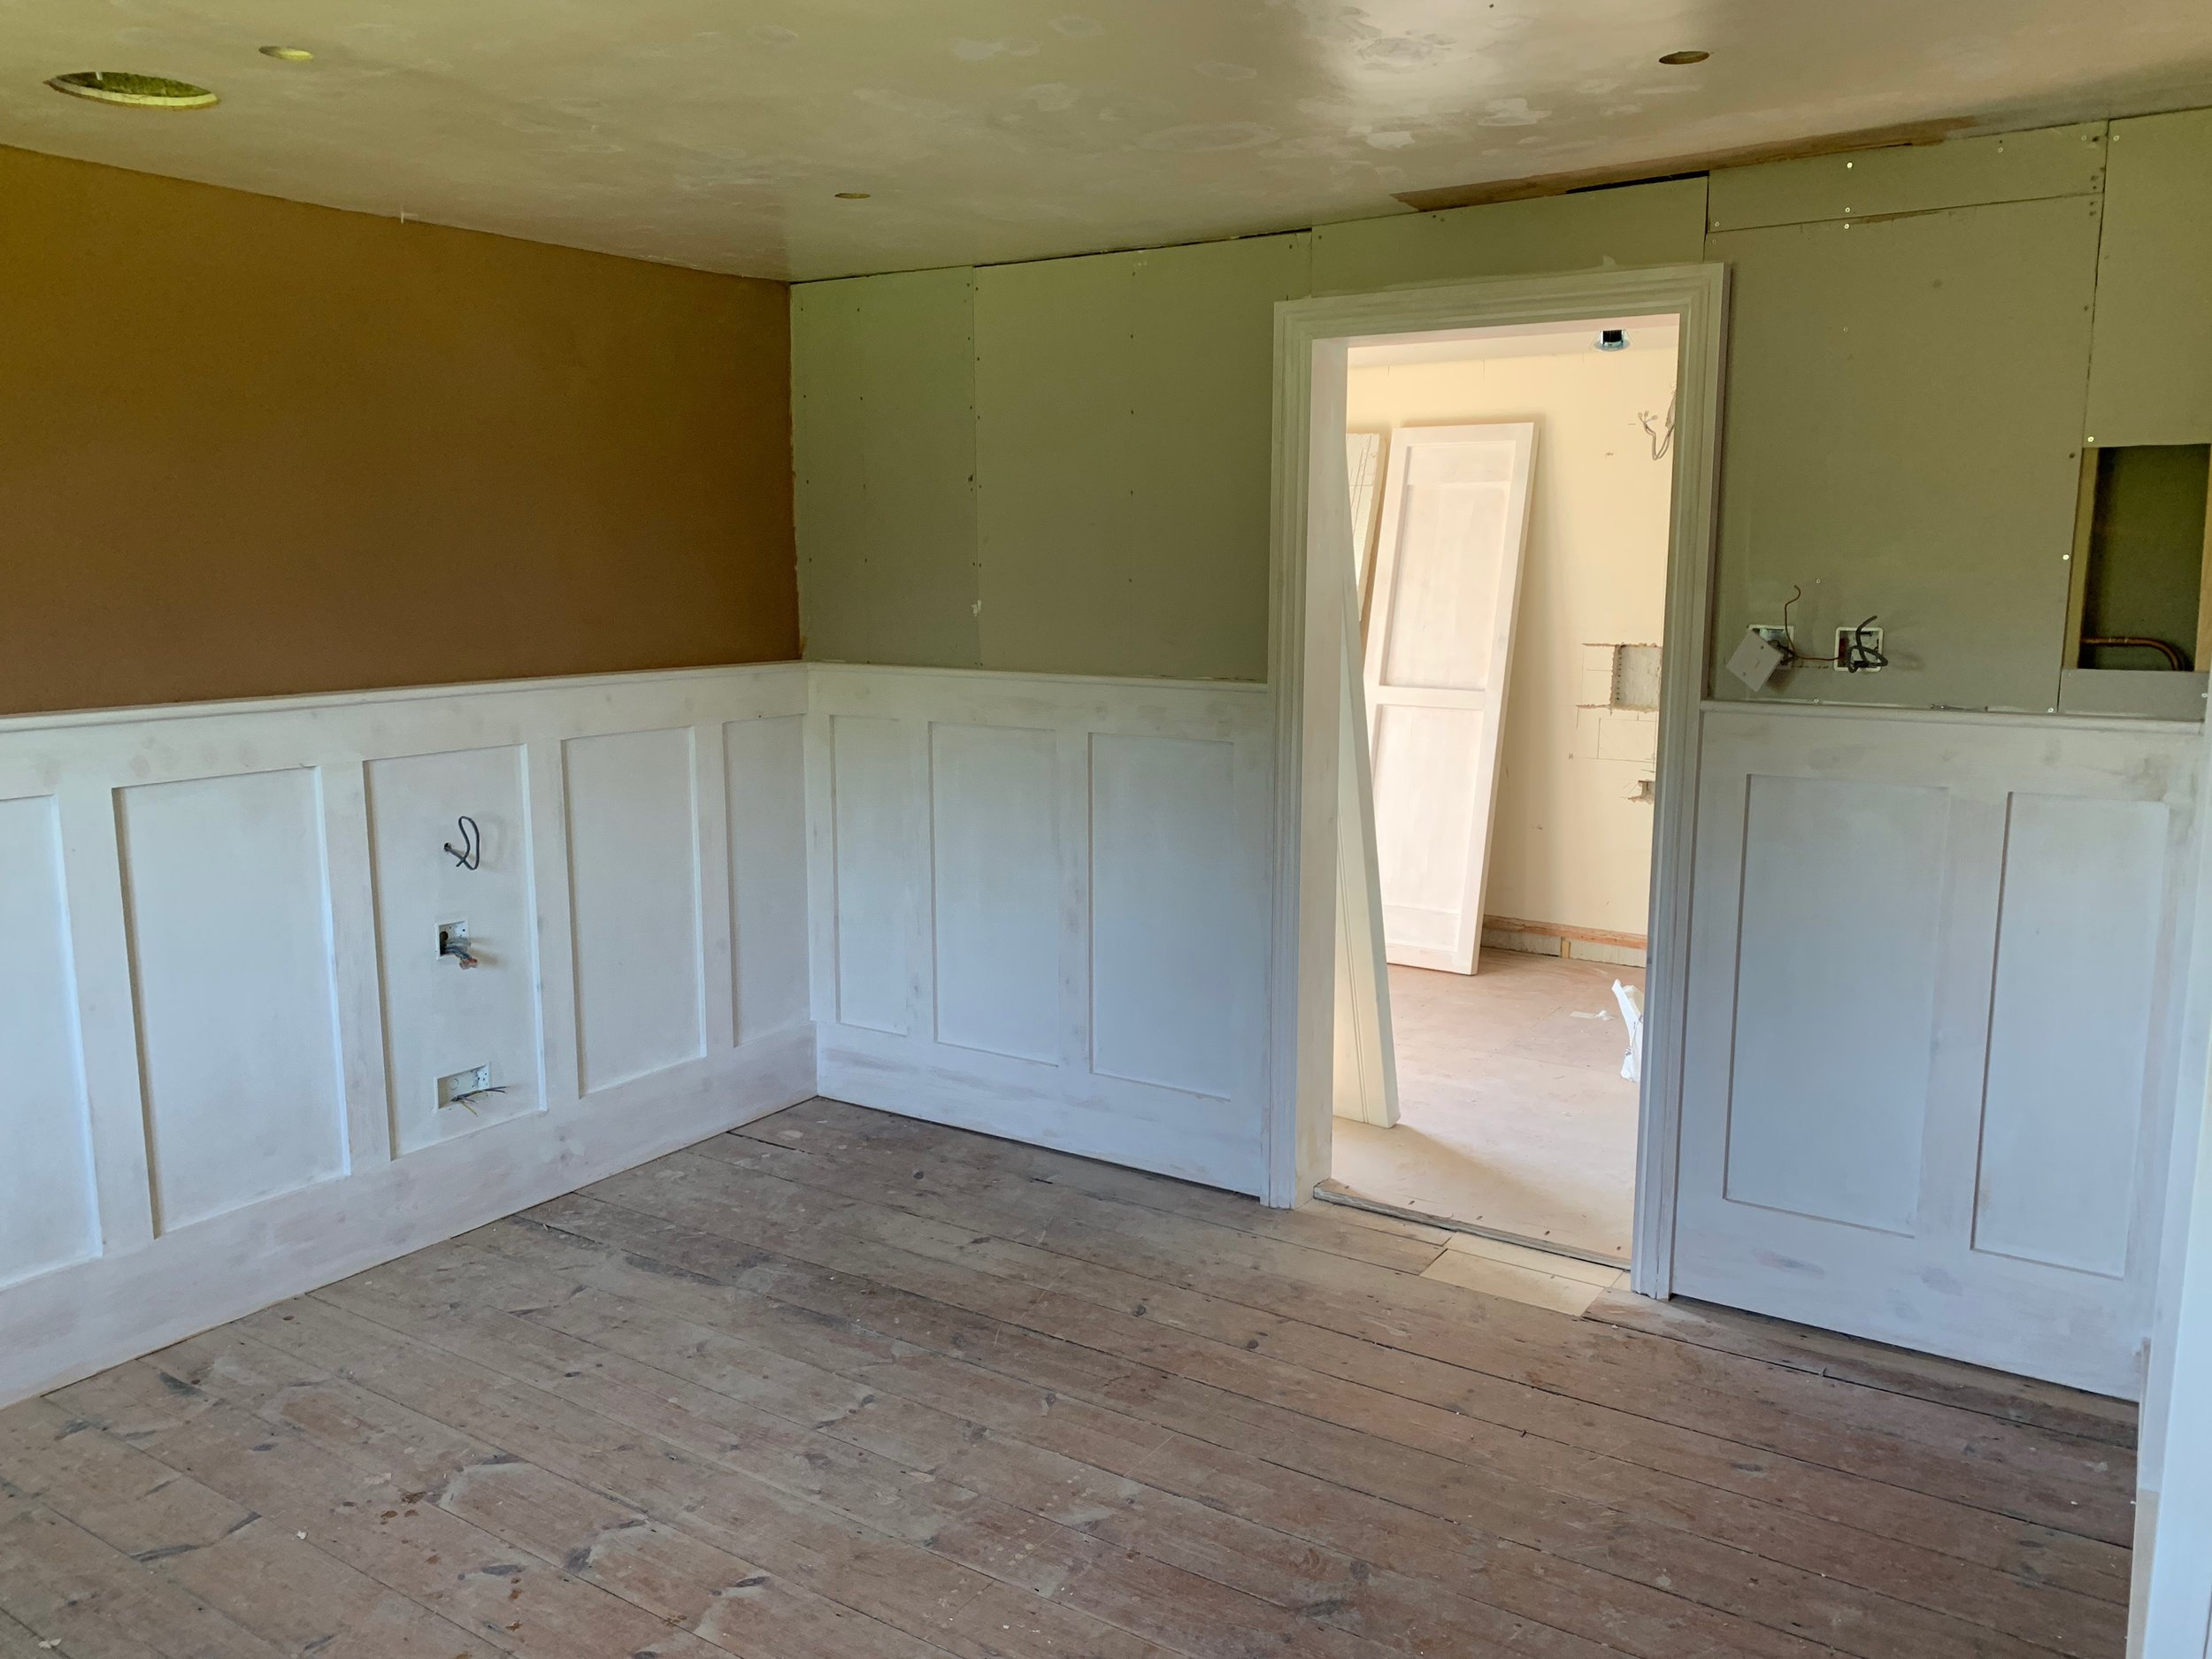 The main bedroom with the new en-suite is starting to take shape.